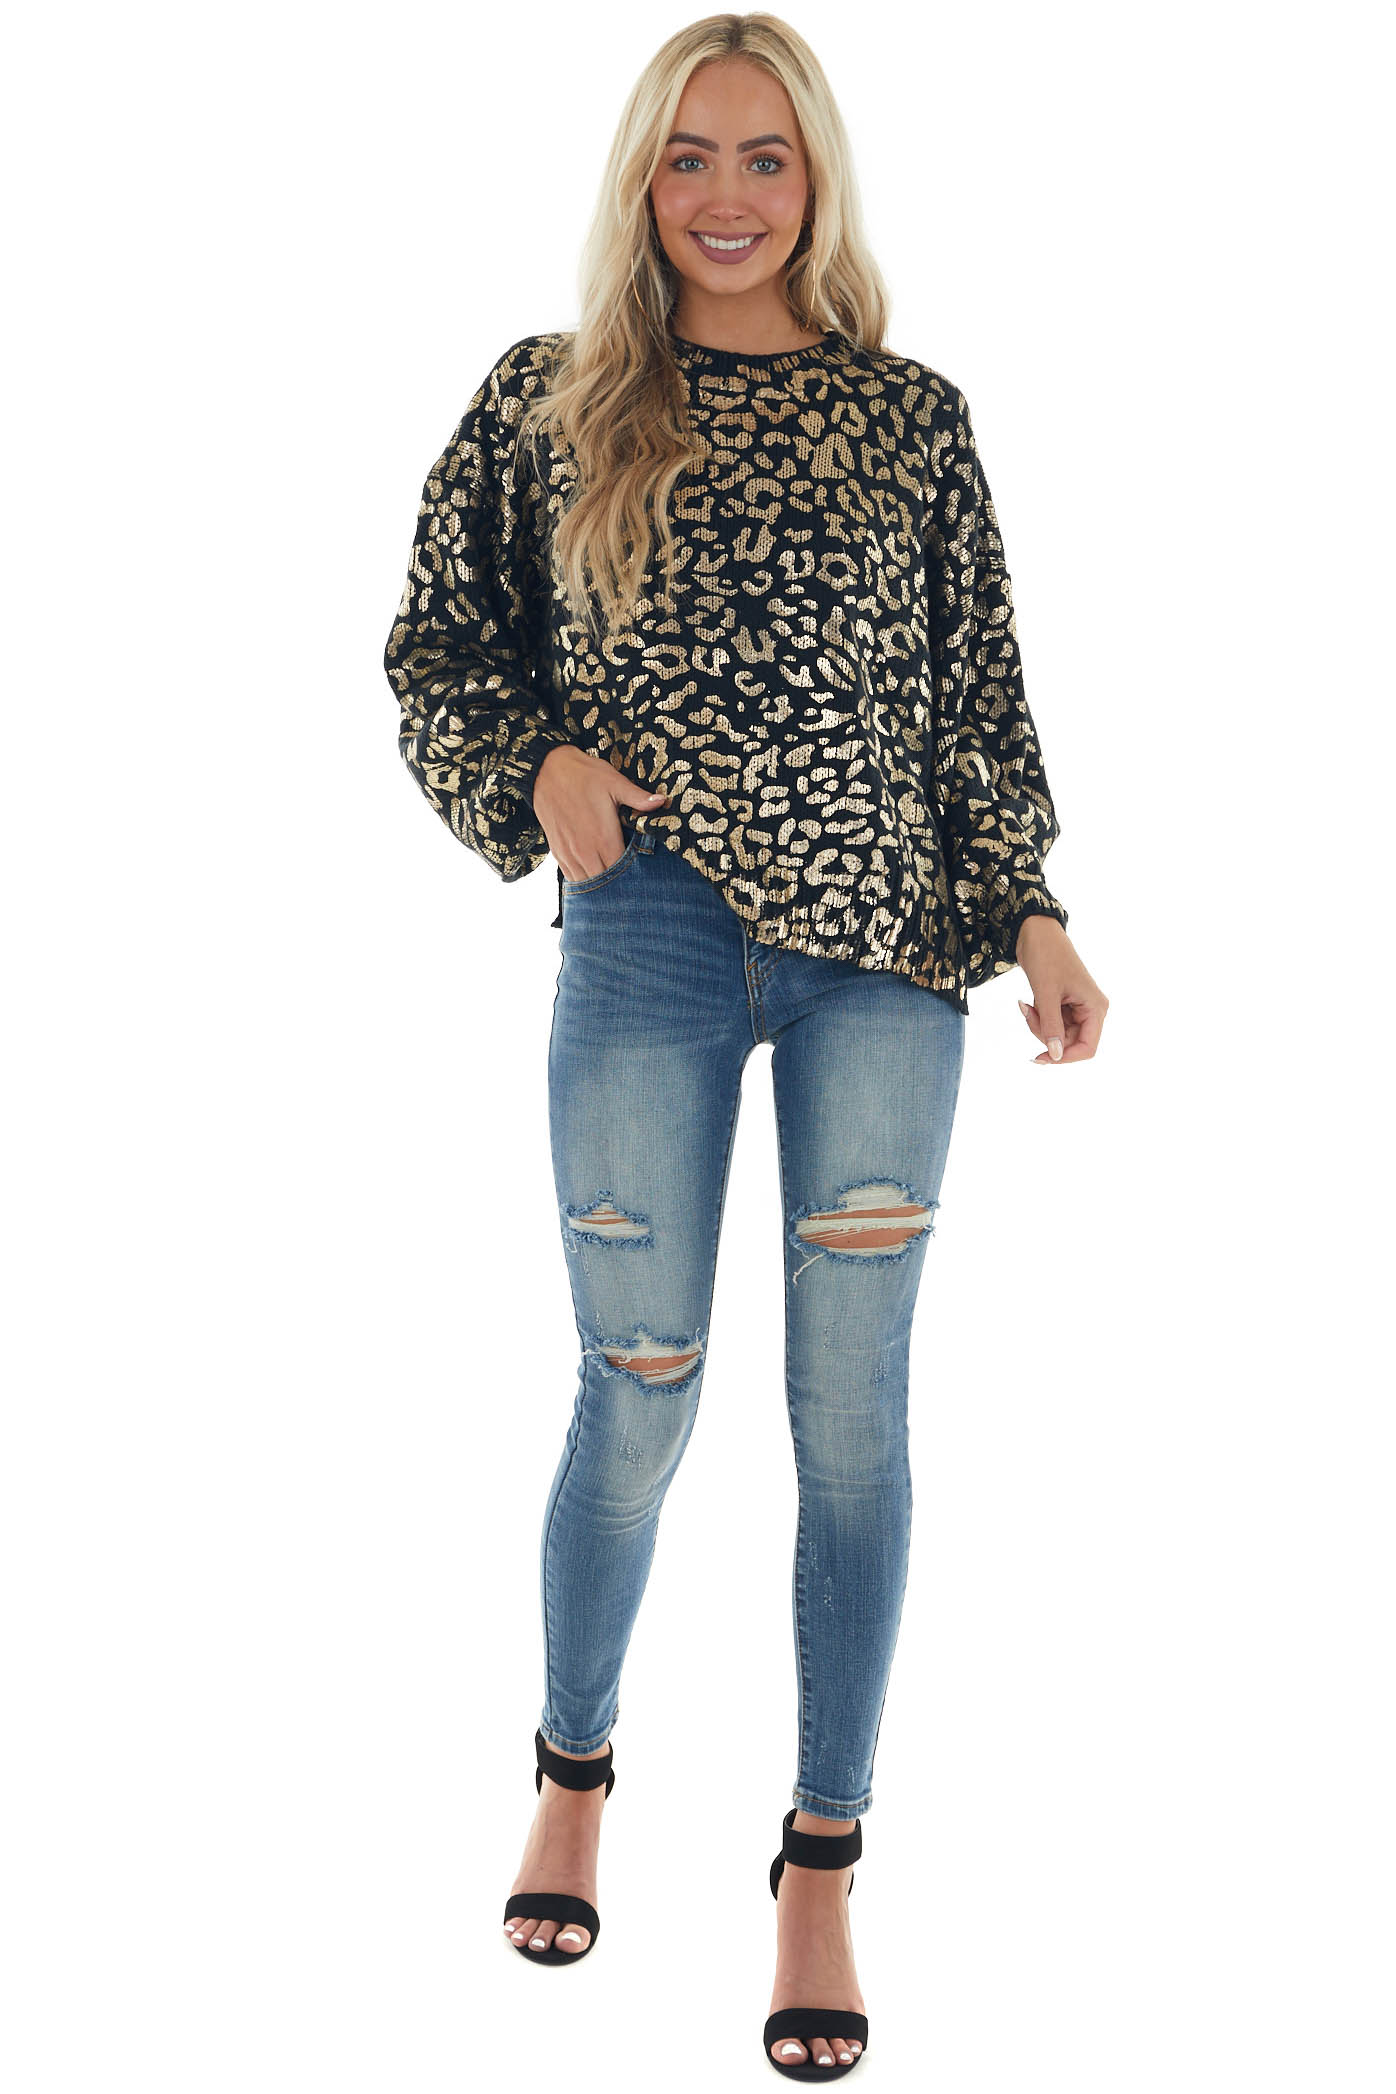 Black and Gold Leopard Print Sweater